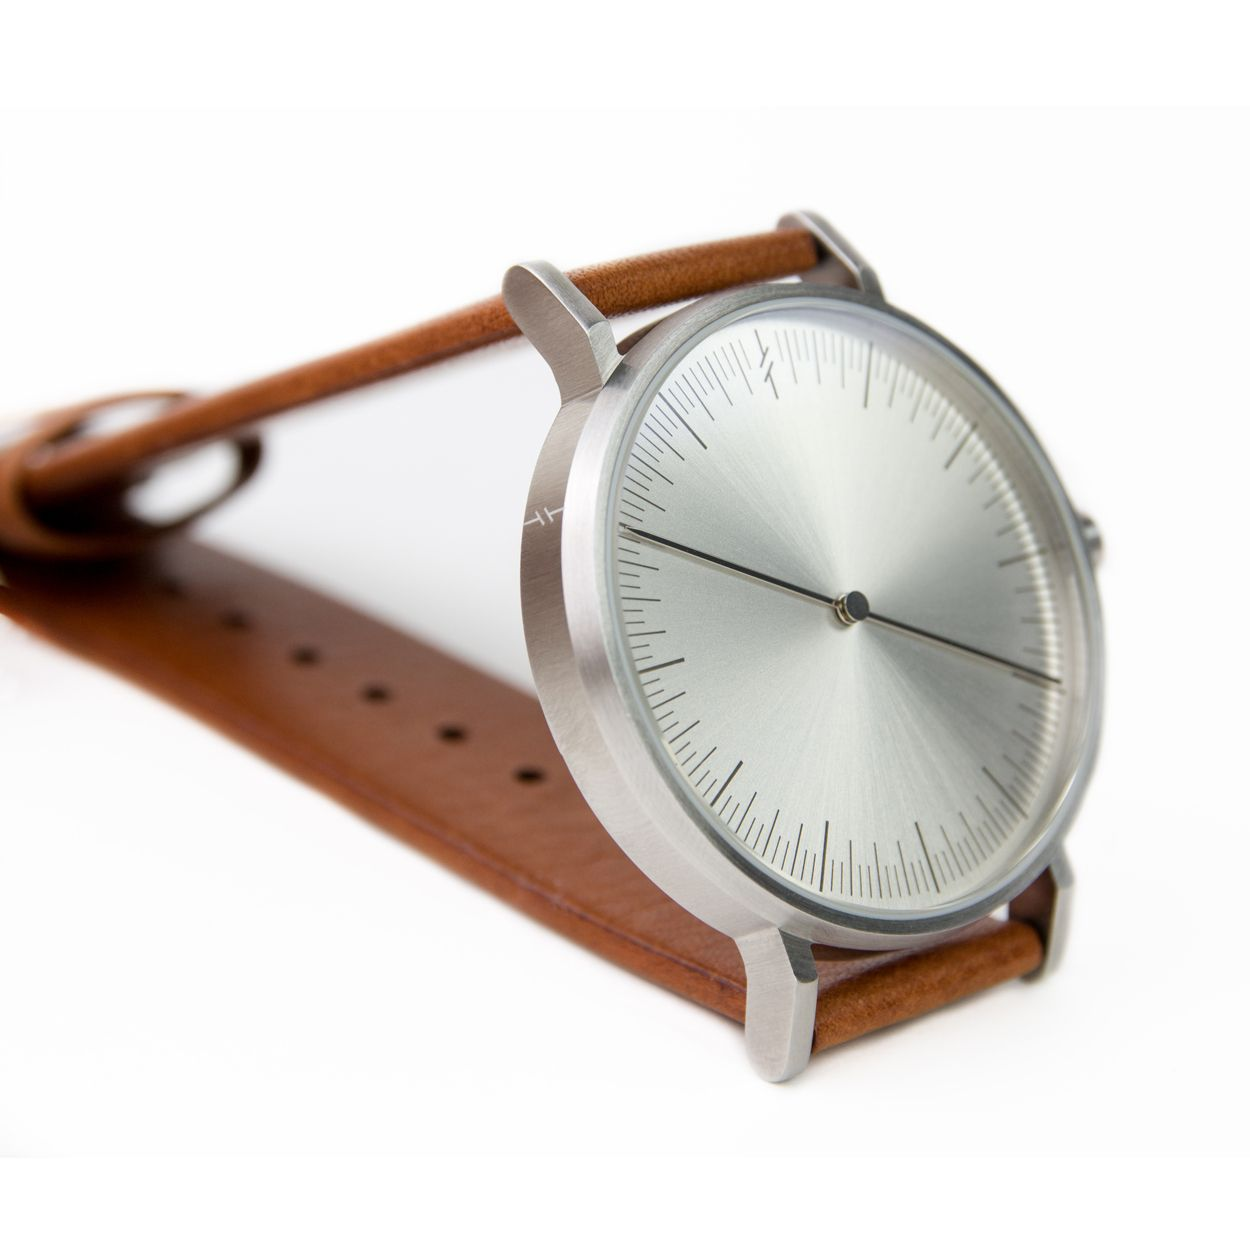 Keep it nice and simple with the Simpl One watch by Bangkok-based brand Simpl. The silver tan colour combination and minimal design makes it an easy-going accessory that is easy to read and to pair with outfits.